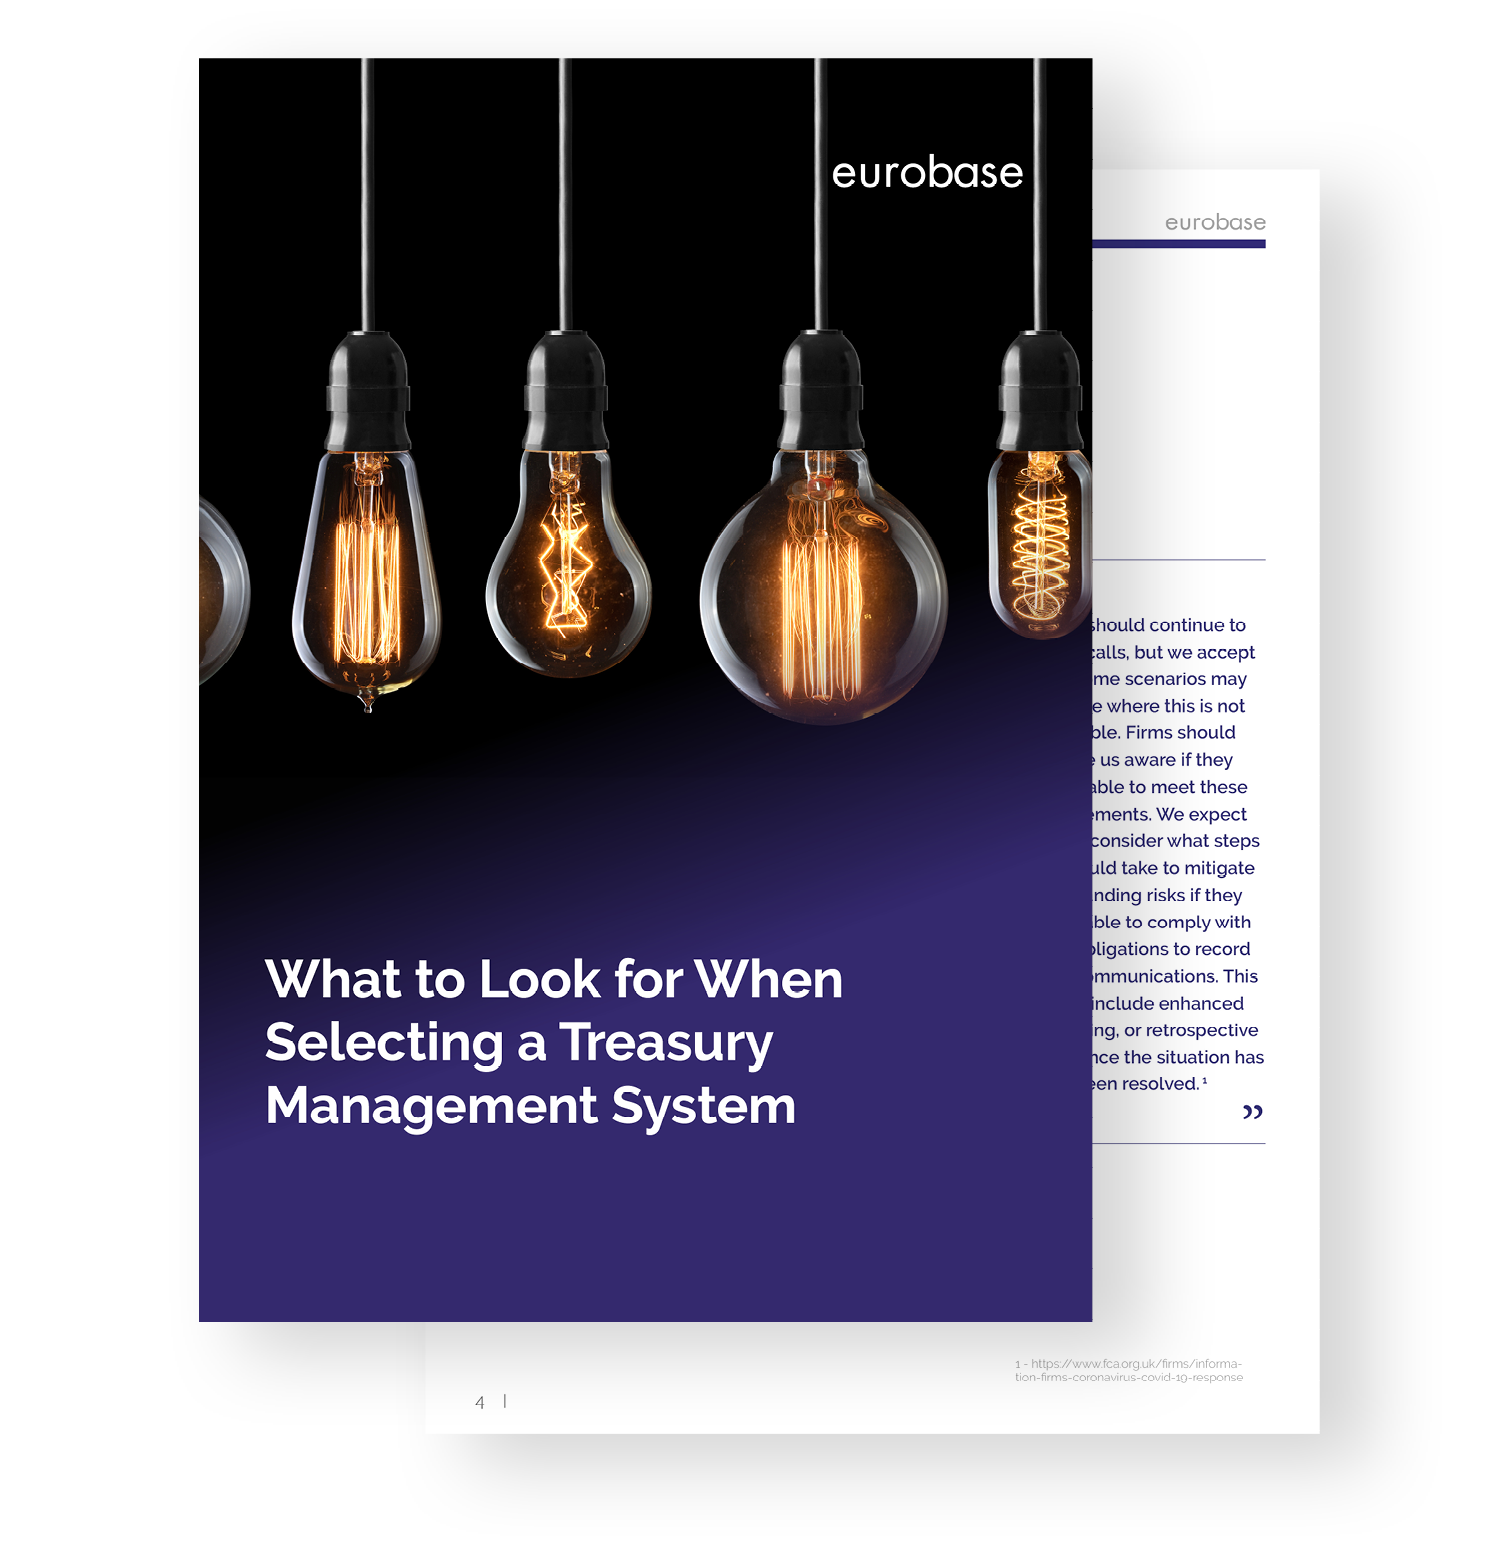 selecting a treasury management system